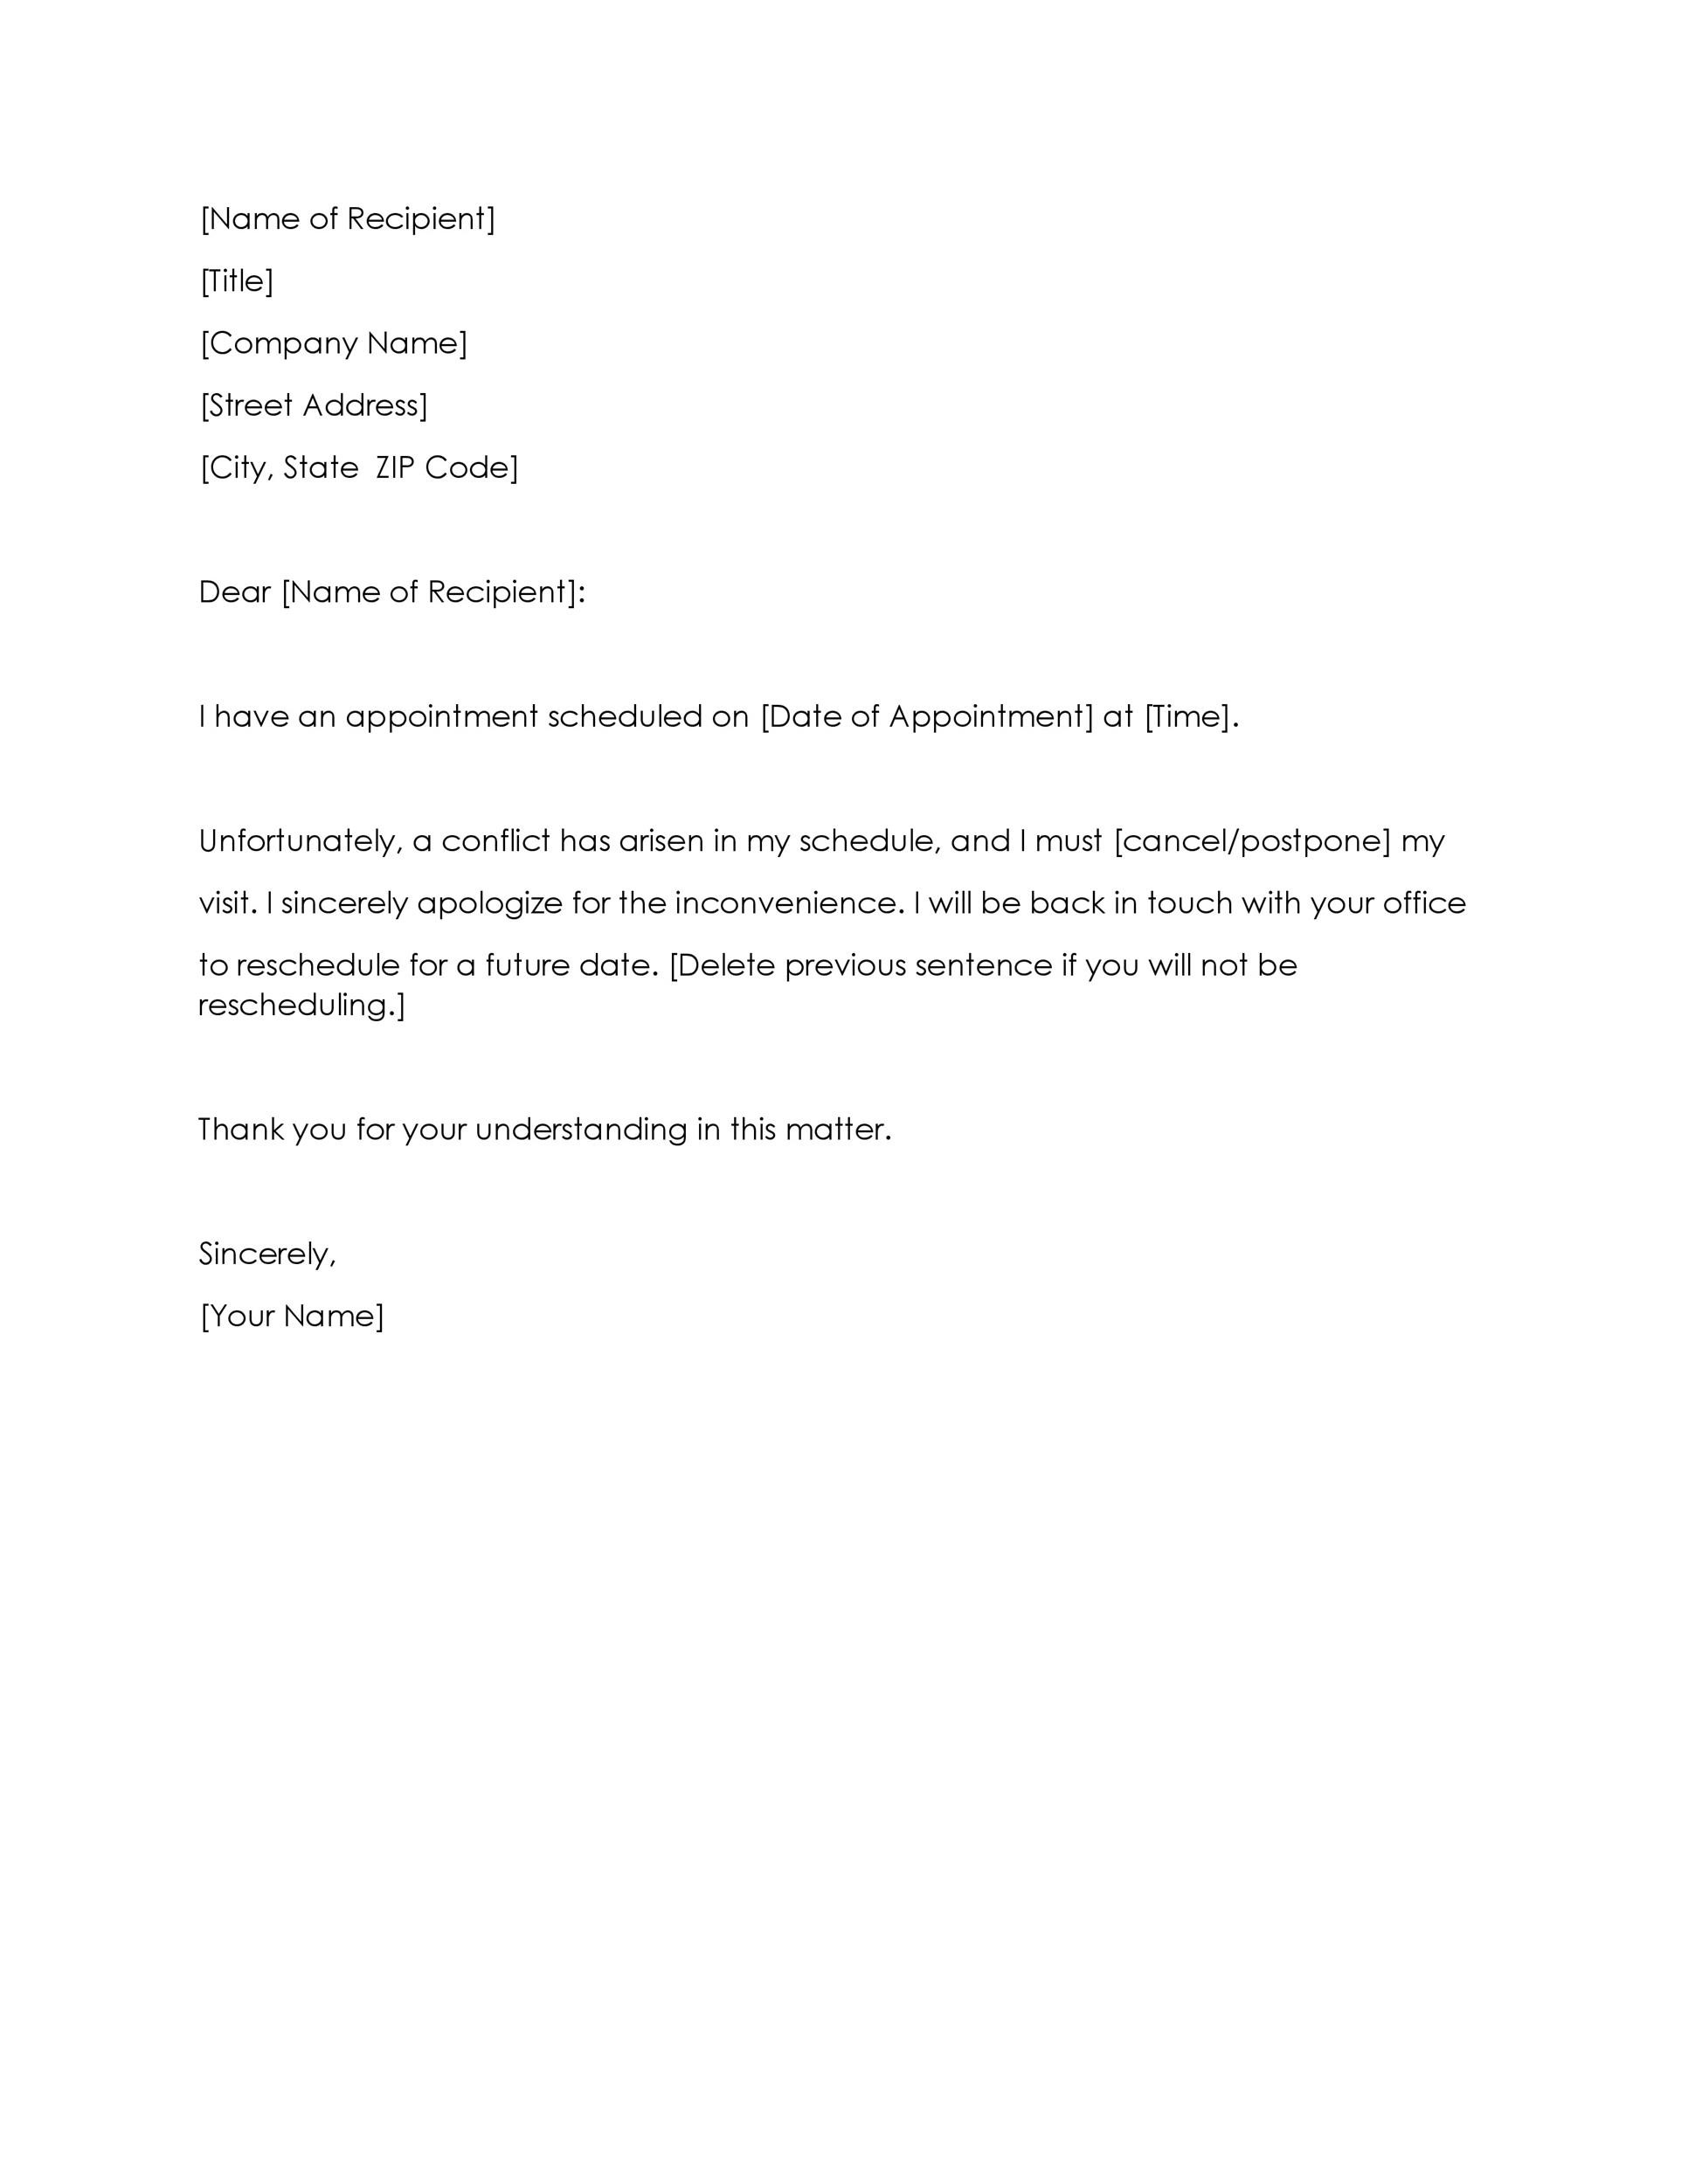 Free cancellation letter 11